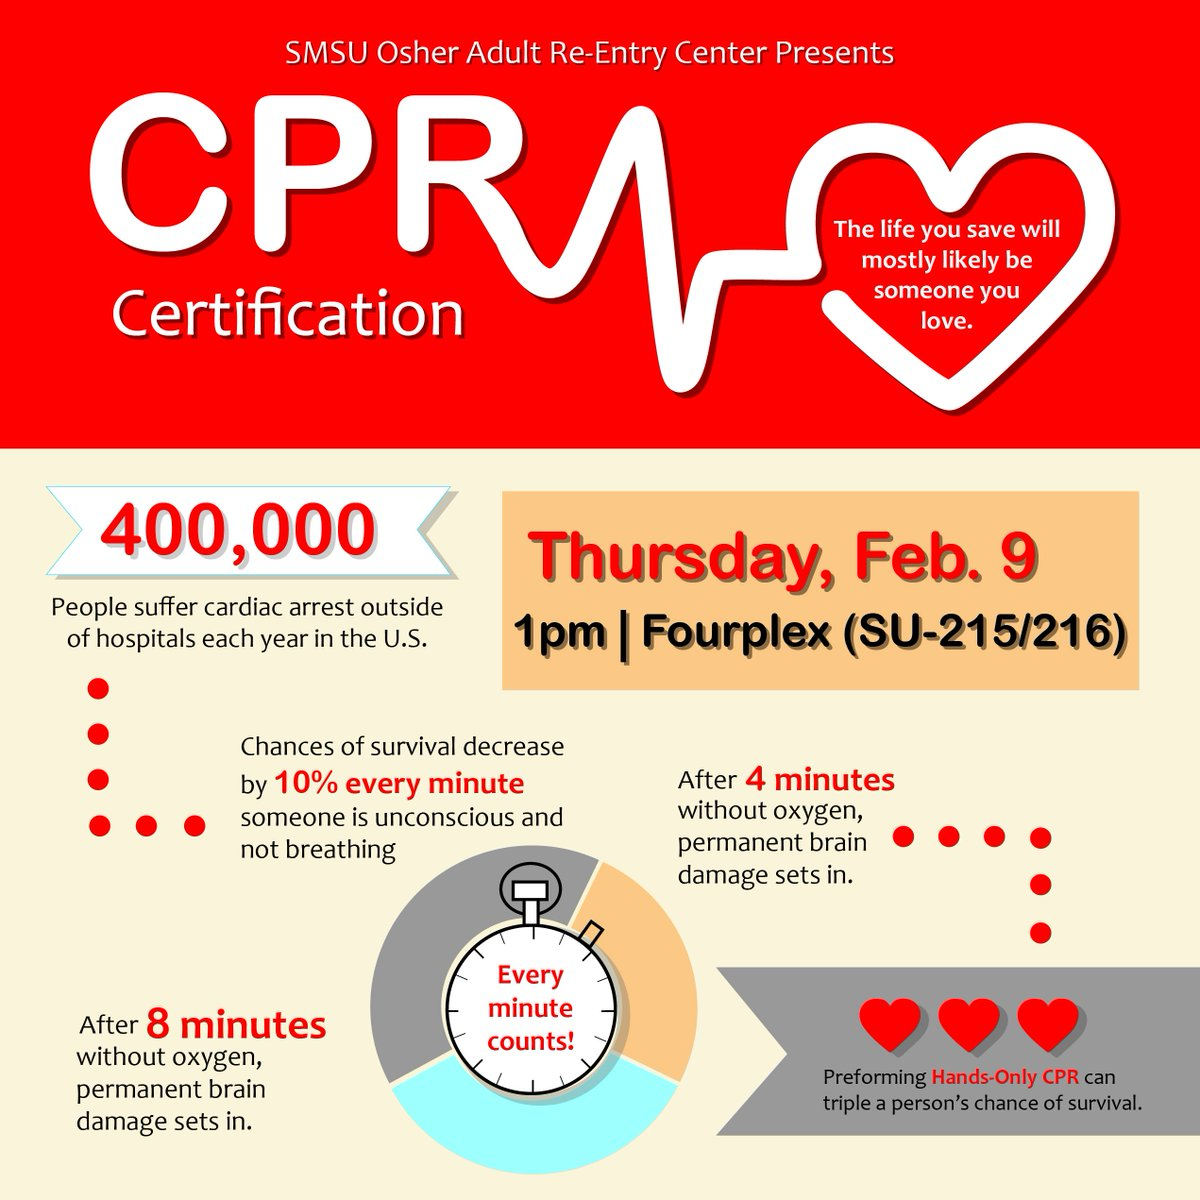 Csusb student union on twitter its not too late to learn how to sign up for cpr certification training at the oarc mysmsu smsuadvocate csusb httpstw59z2mc4na 1betcityfo Choice Image